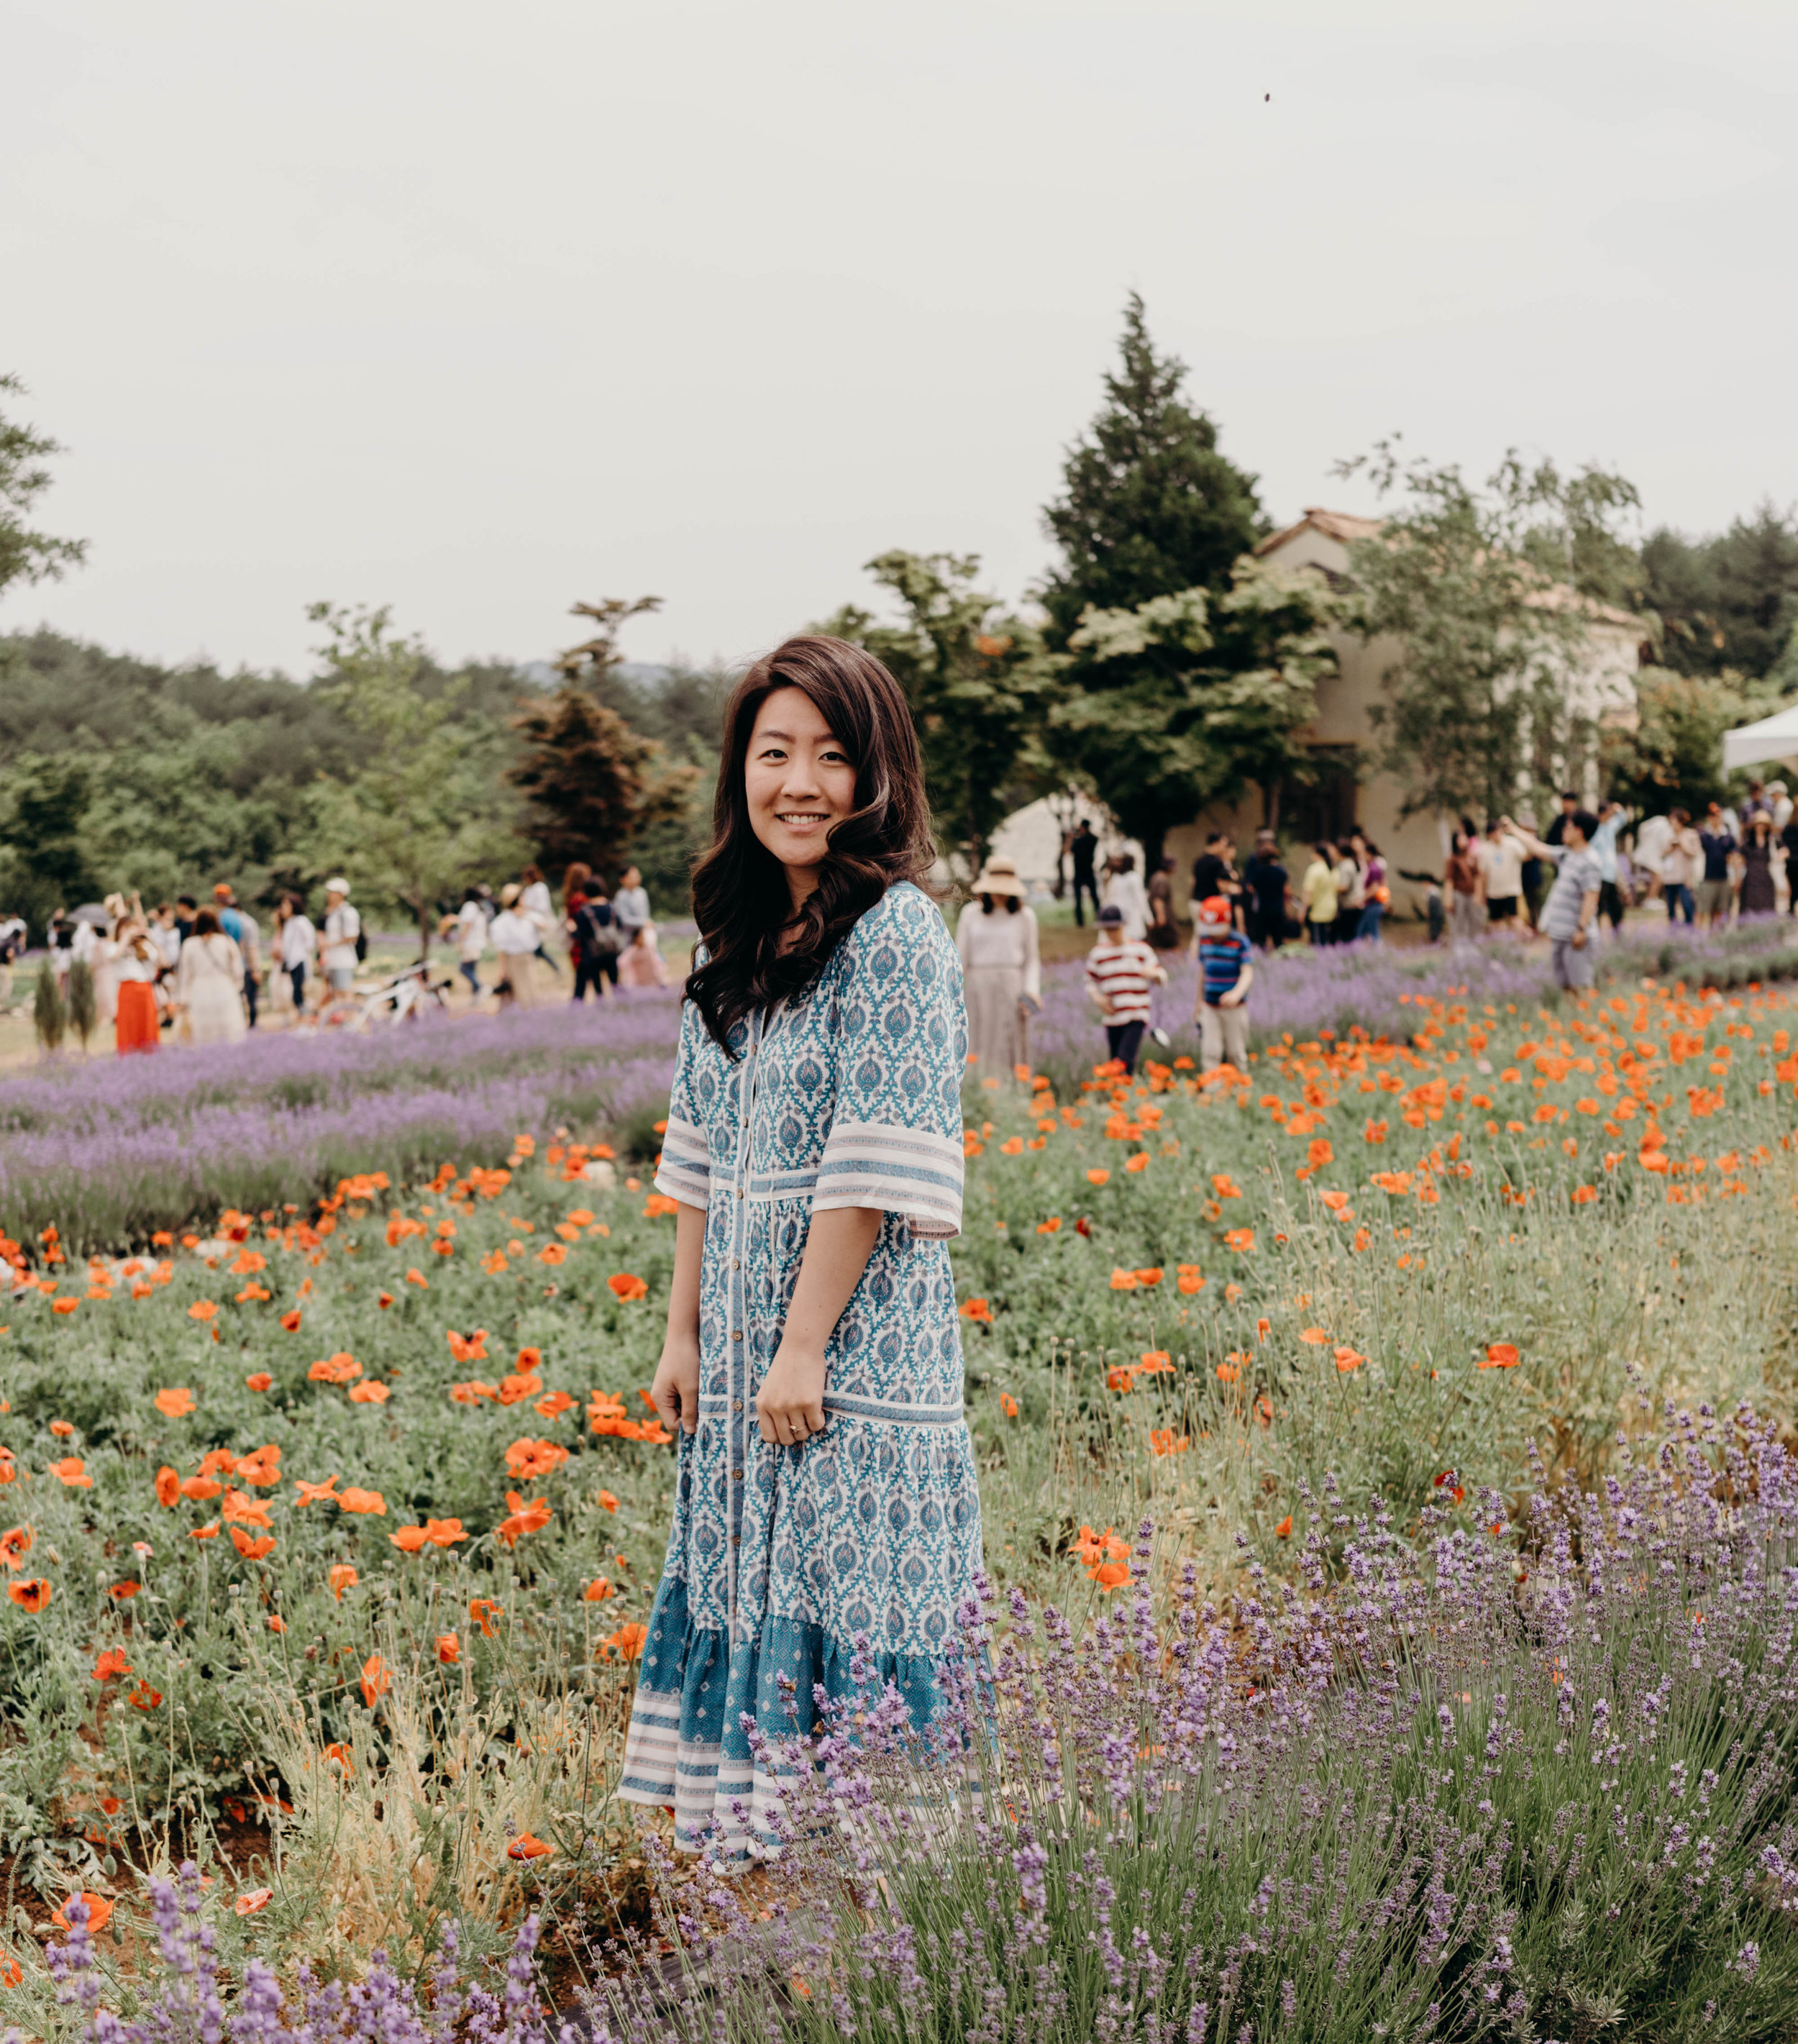 Hani Lavender Farm in Goseong, South Korea | On the Street Where We Live ( aretherelilactrees.com )